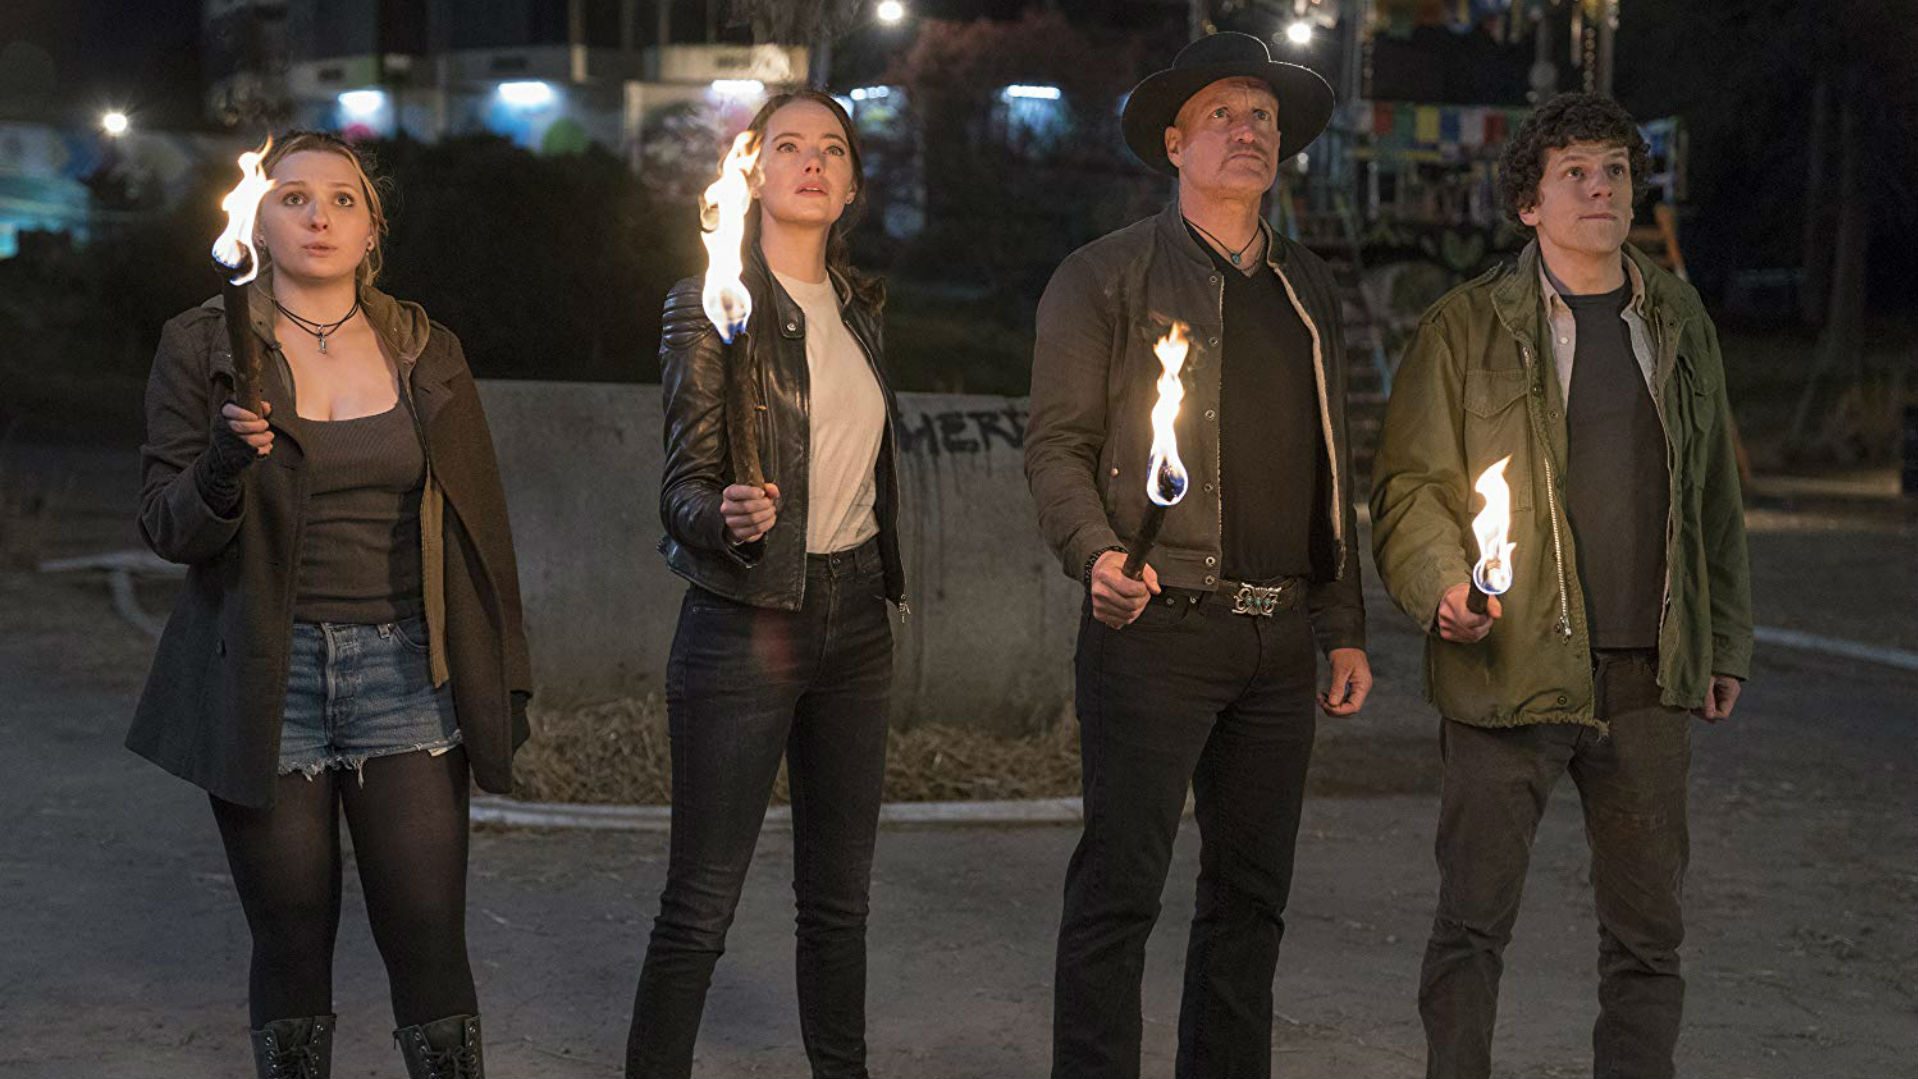 Zombieland: Double Tap: The Entire Gang Is Back in Action